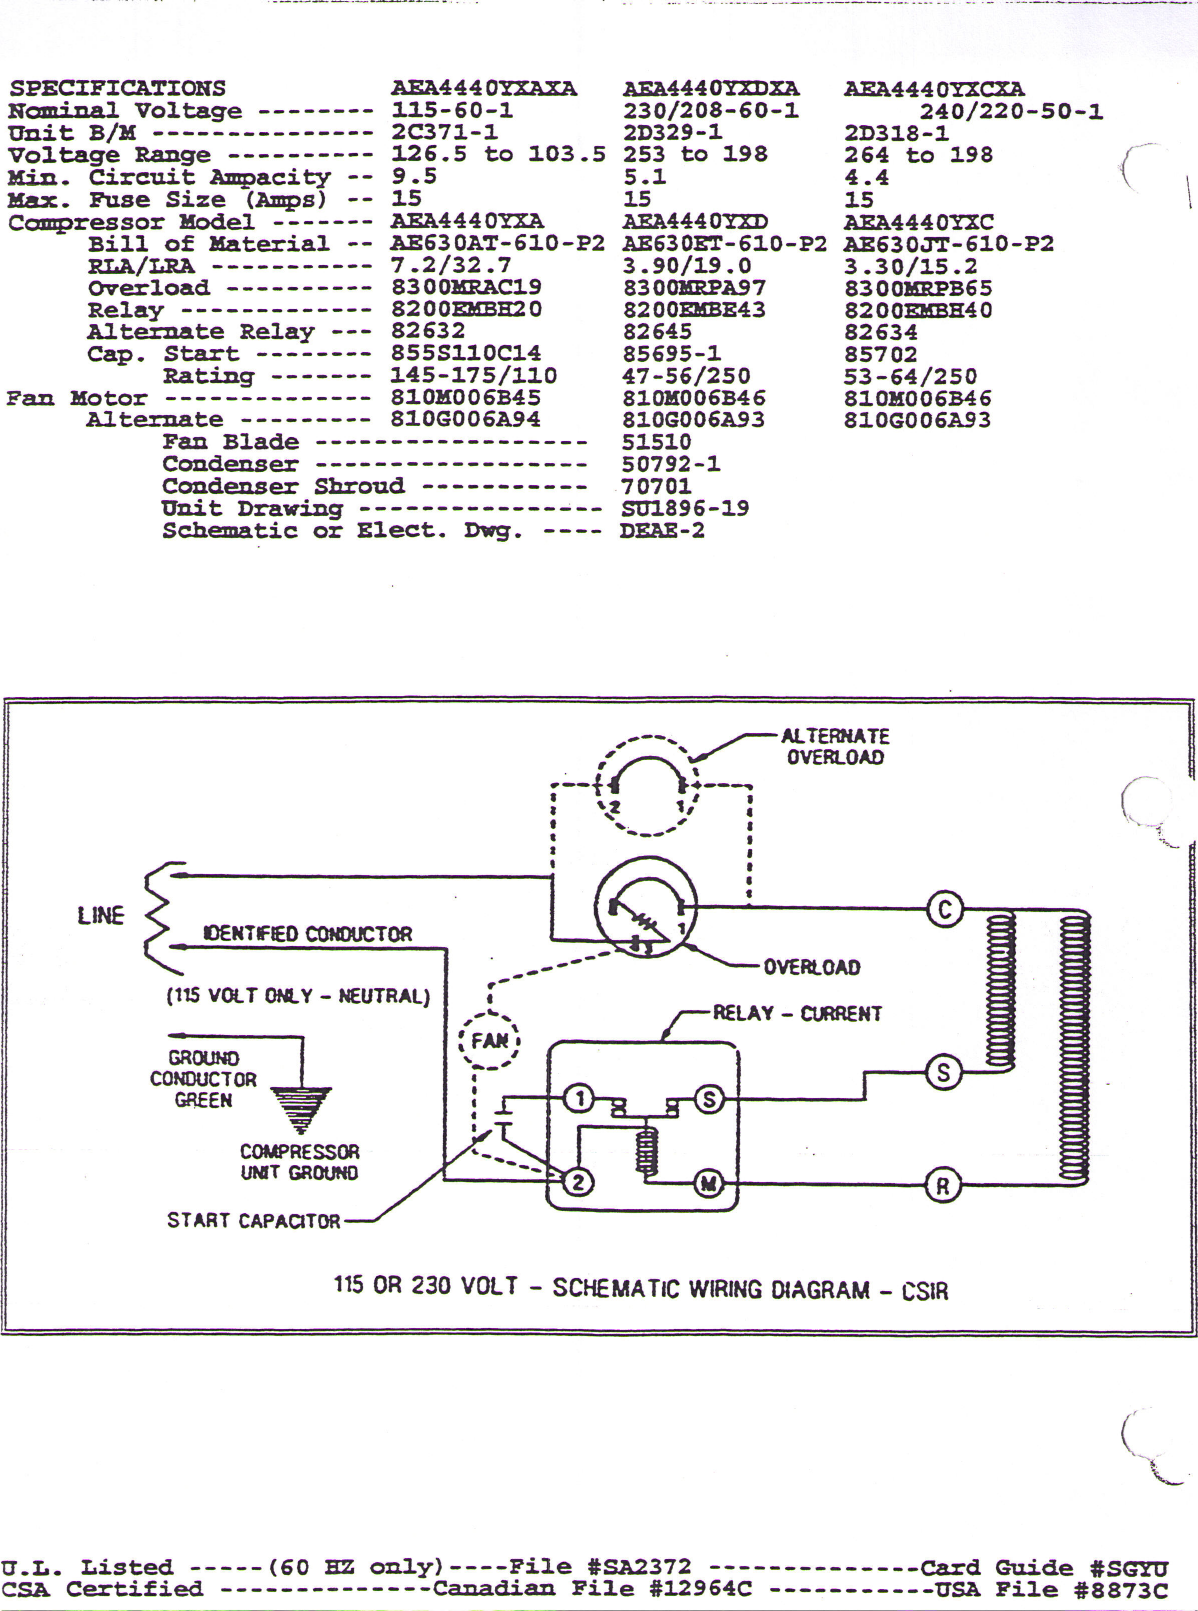 Tecumseh Aea4440yxaxa Performance Data Sheet Wiring Diagram Page 2 Of